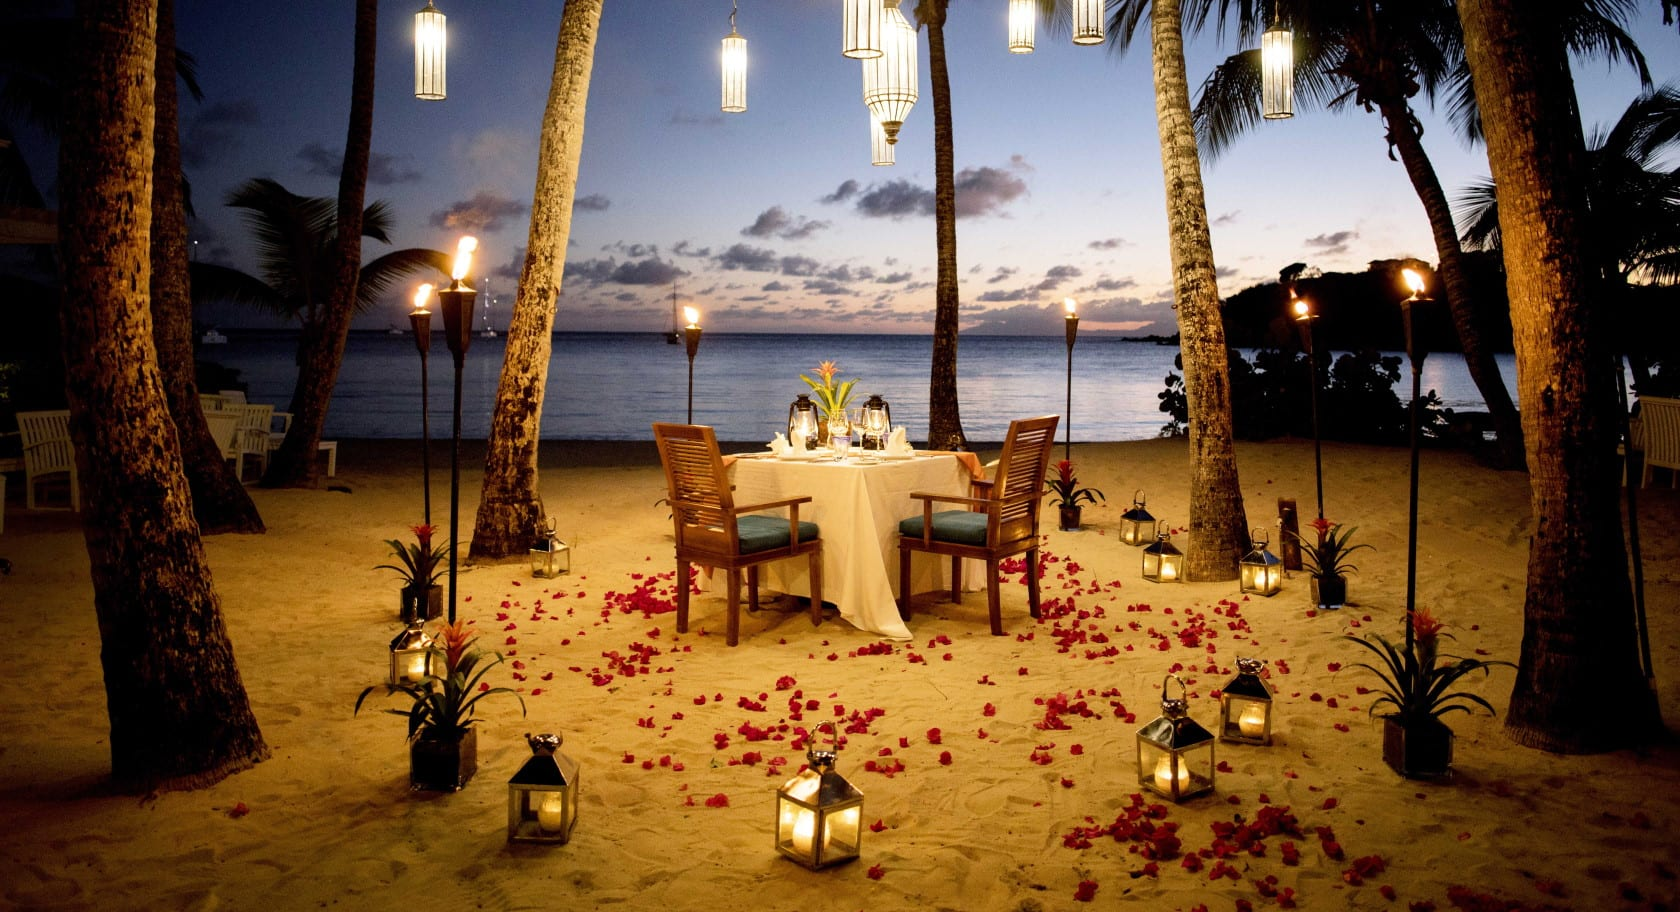 Romantic private dining area on the beach at night